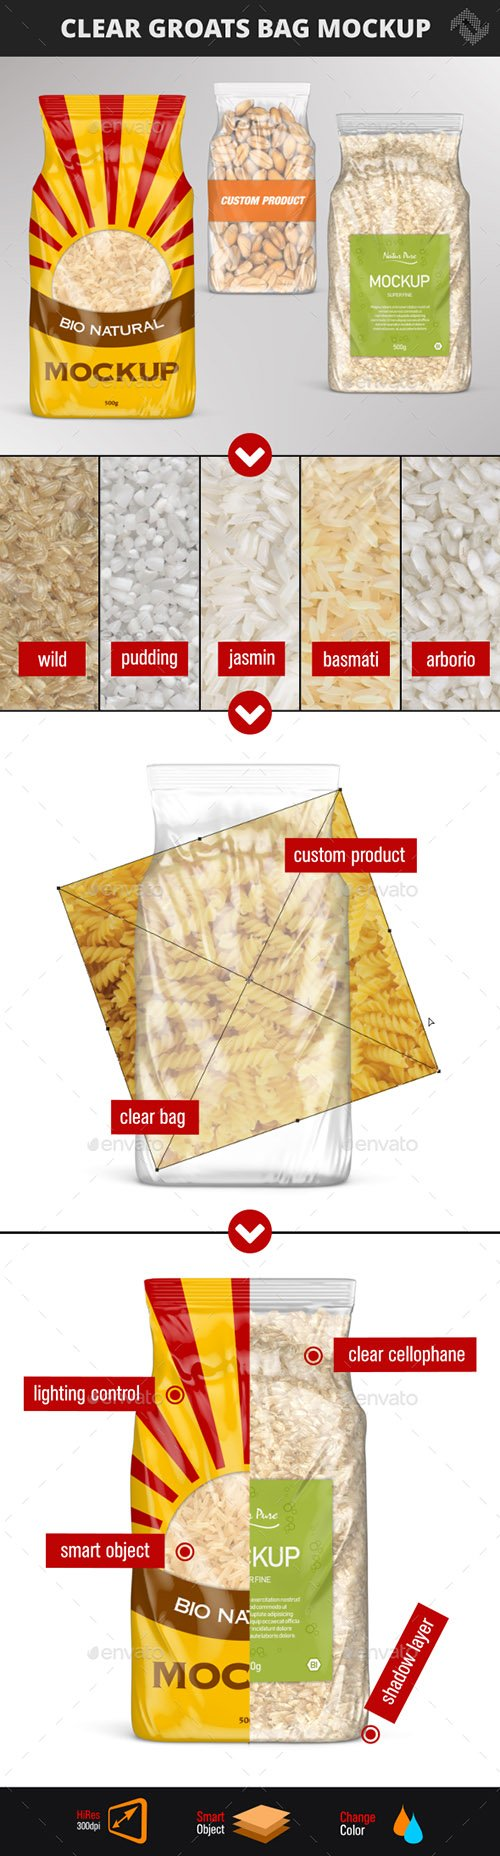 GR - Clear Plastic Rice Bag Mockup 22119181